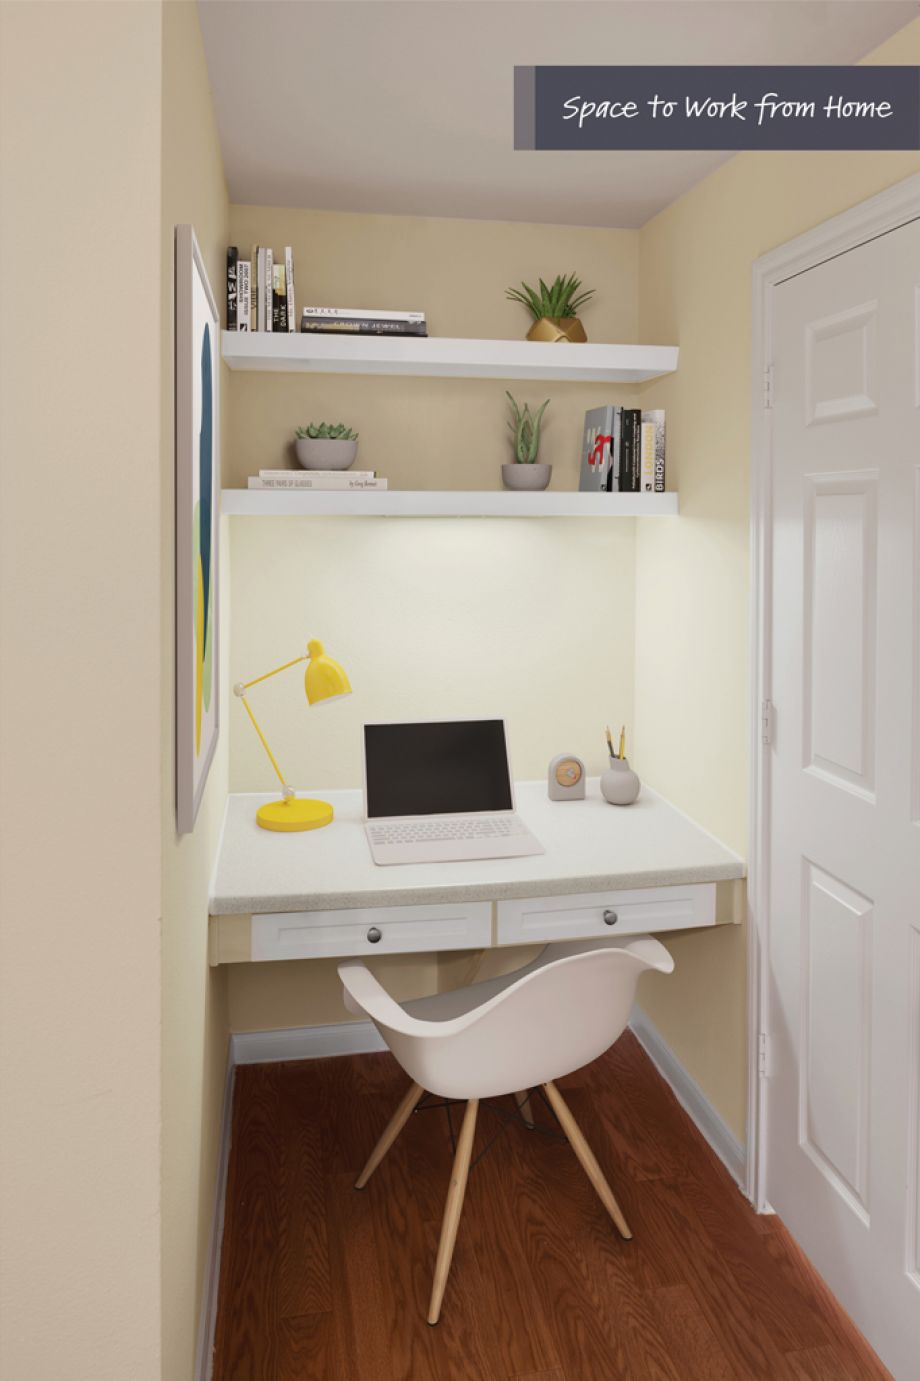 Space to work from home at Camden Oak Crest Apartments in Houston, TX